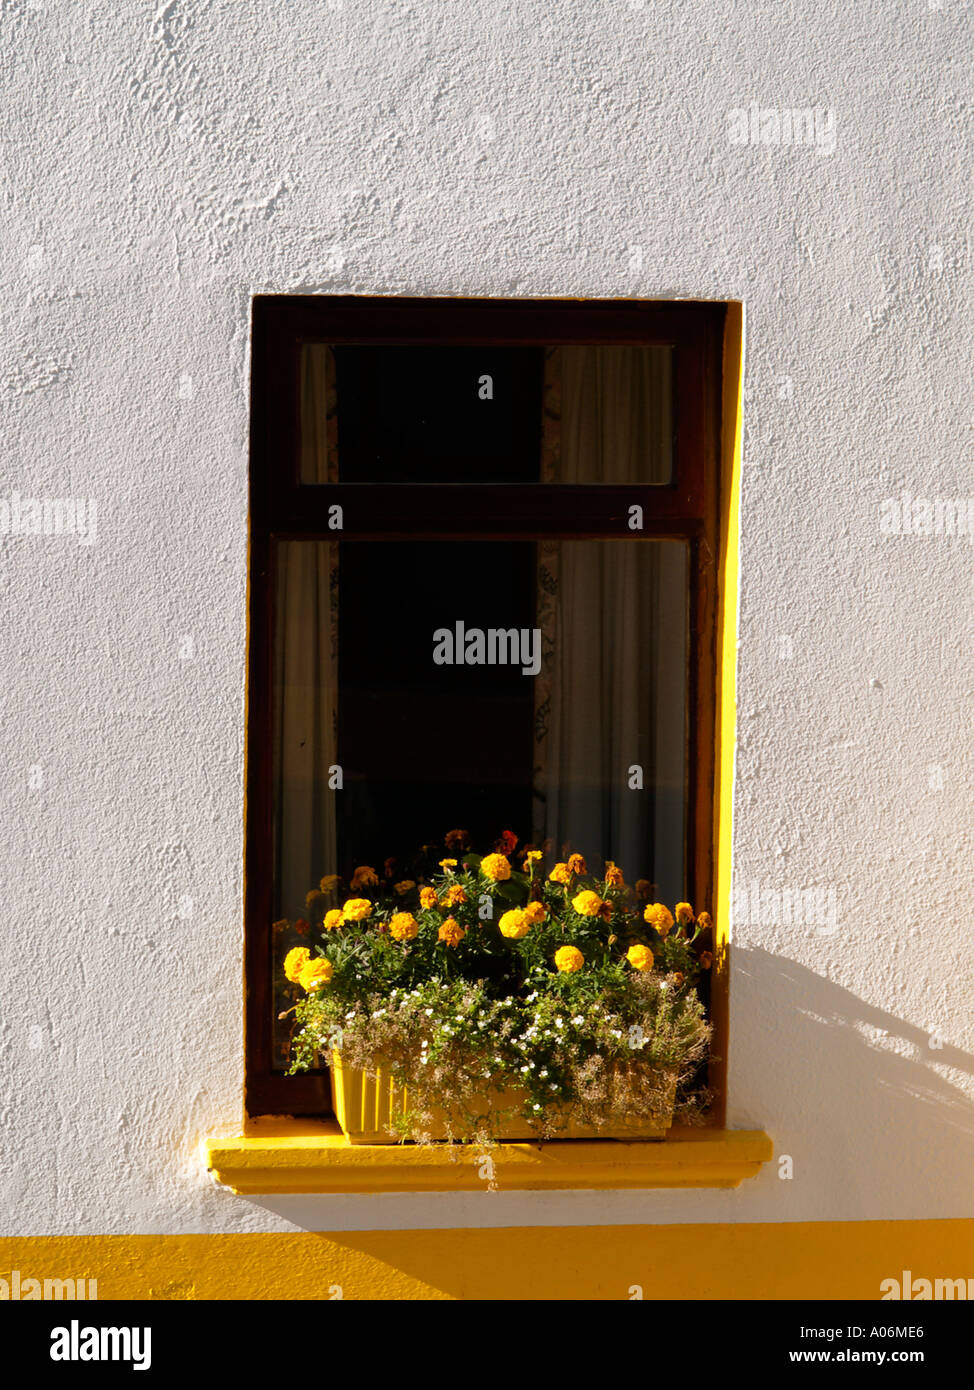 WHITE and YELLOW COTTAGE WINDOW with yellow flowers in the window box Eire Ireland - Stock Image